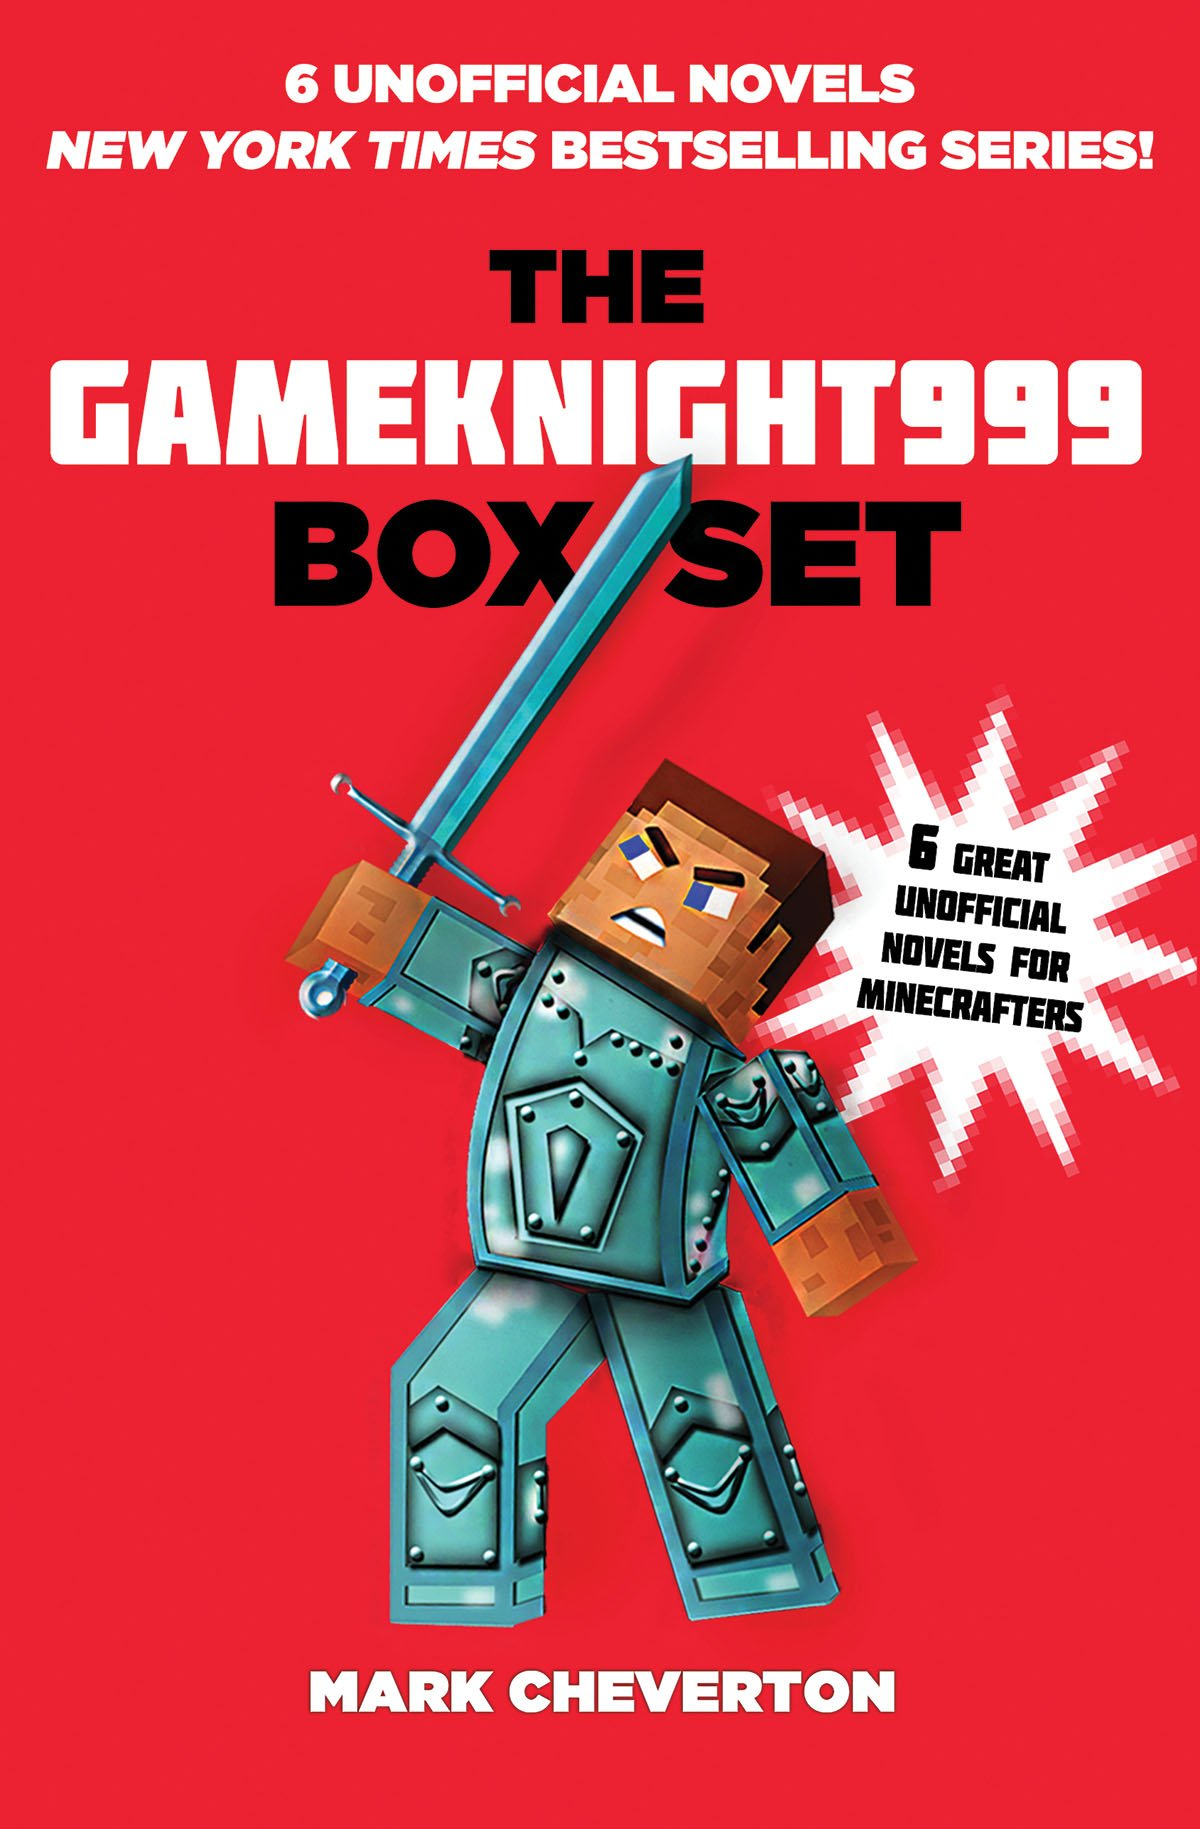 Gameknight999 Box Set Unofficial Minecrafter%C2%92s product image